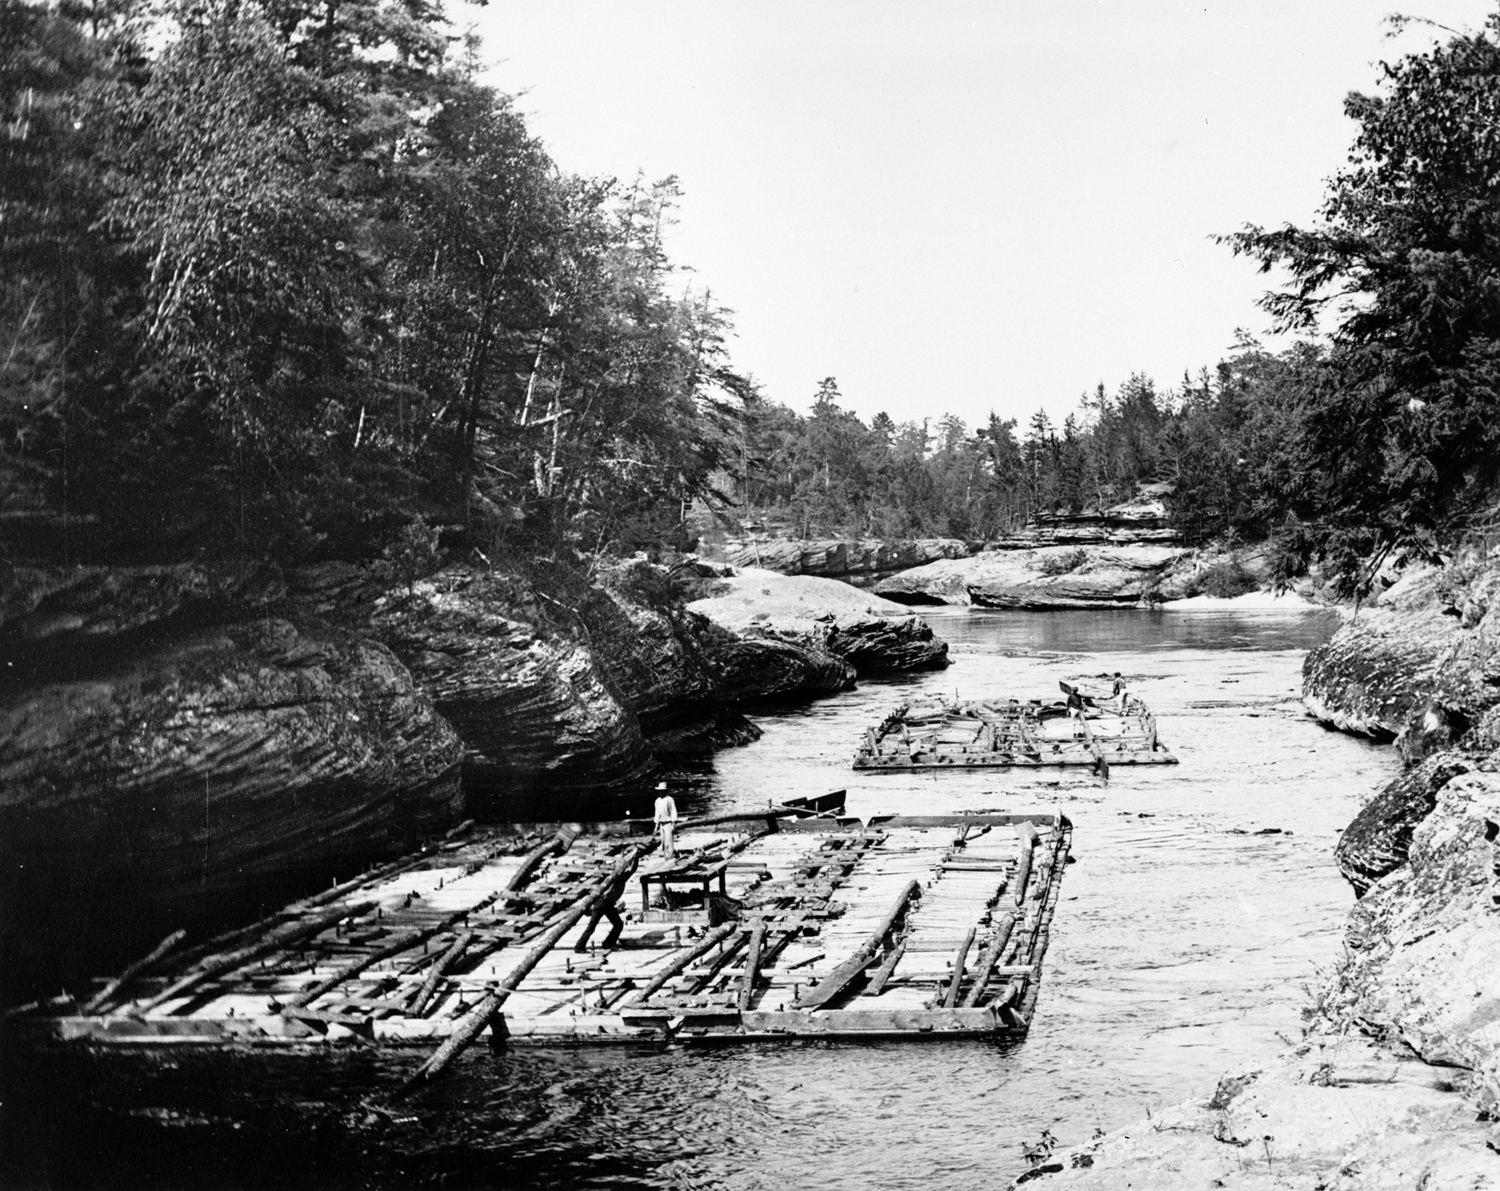 Lumber rafts on the Wisconsin River near the Wisconsin Dells, circa 1886. Photograph by H.H. Bennett, courtesy of the Wisconsin Historical Society, Image ID 6314.